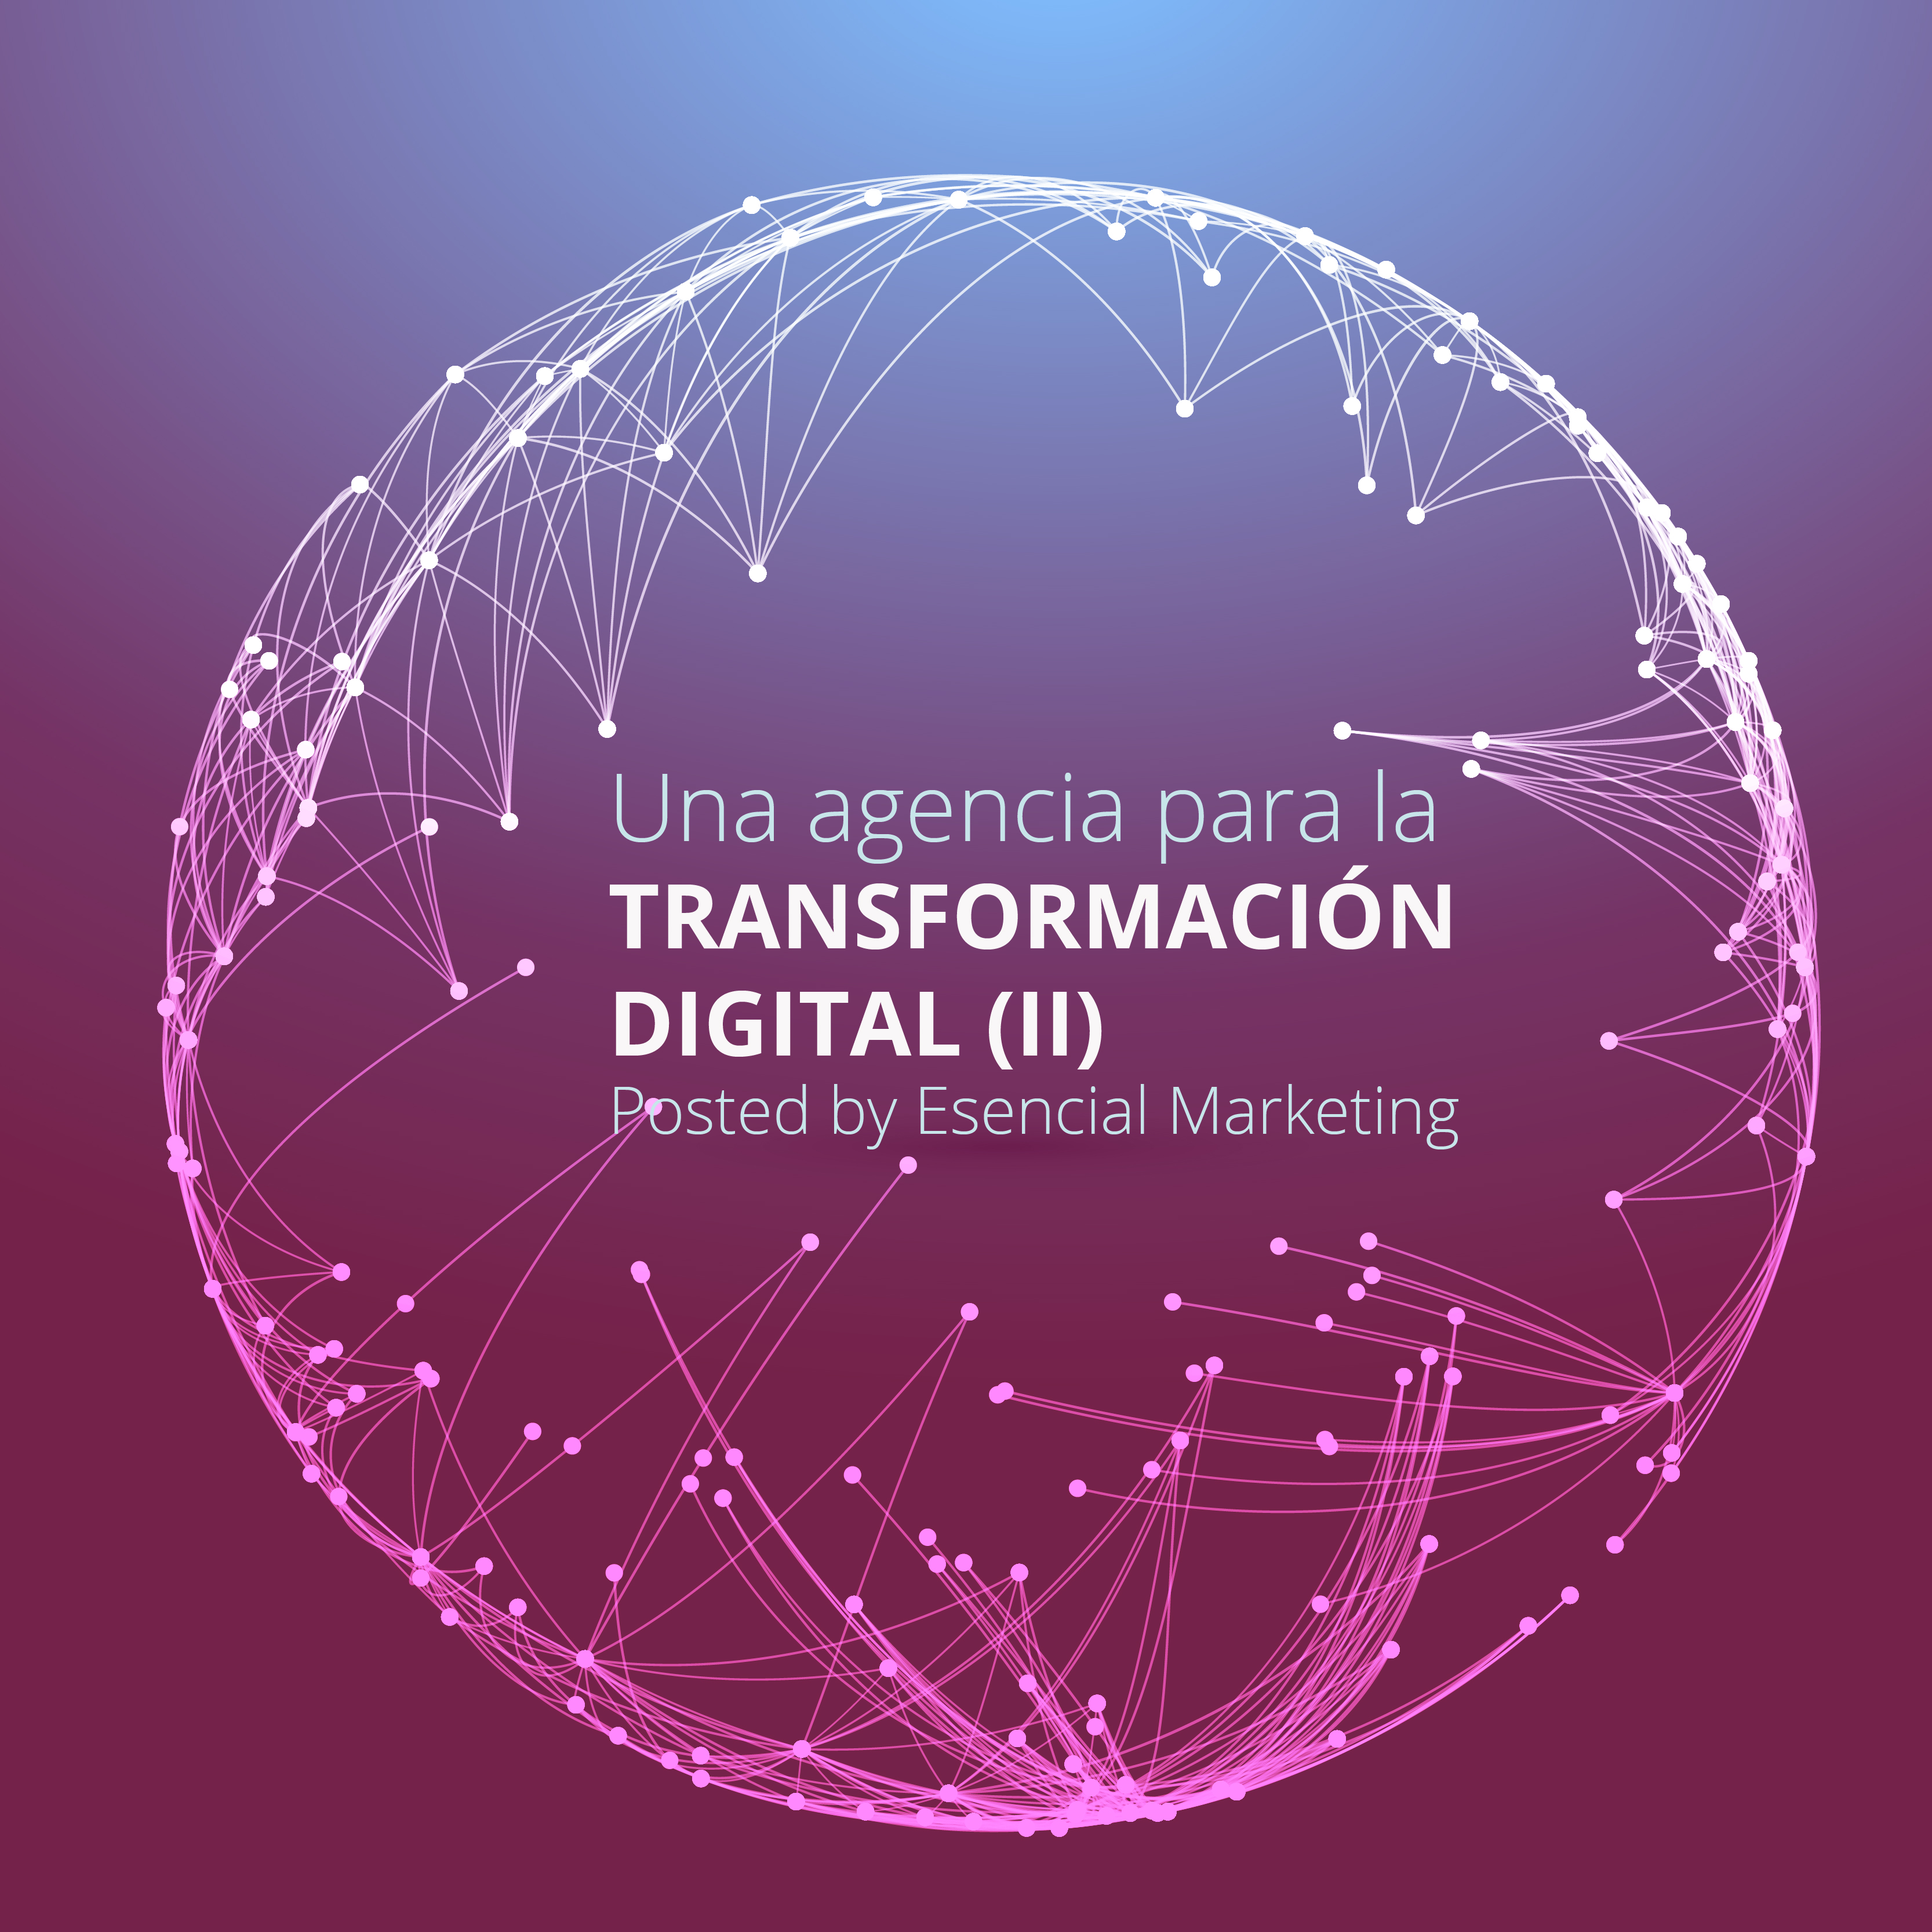 transformacion-digitalii